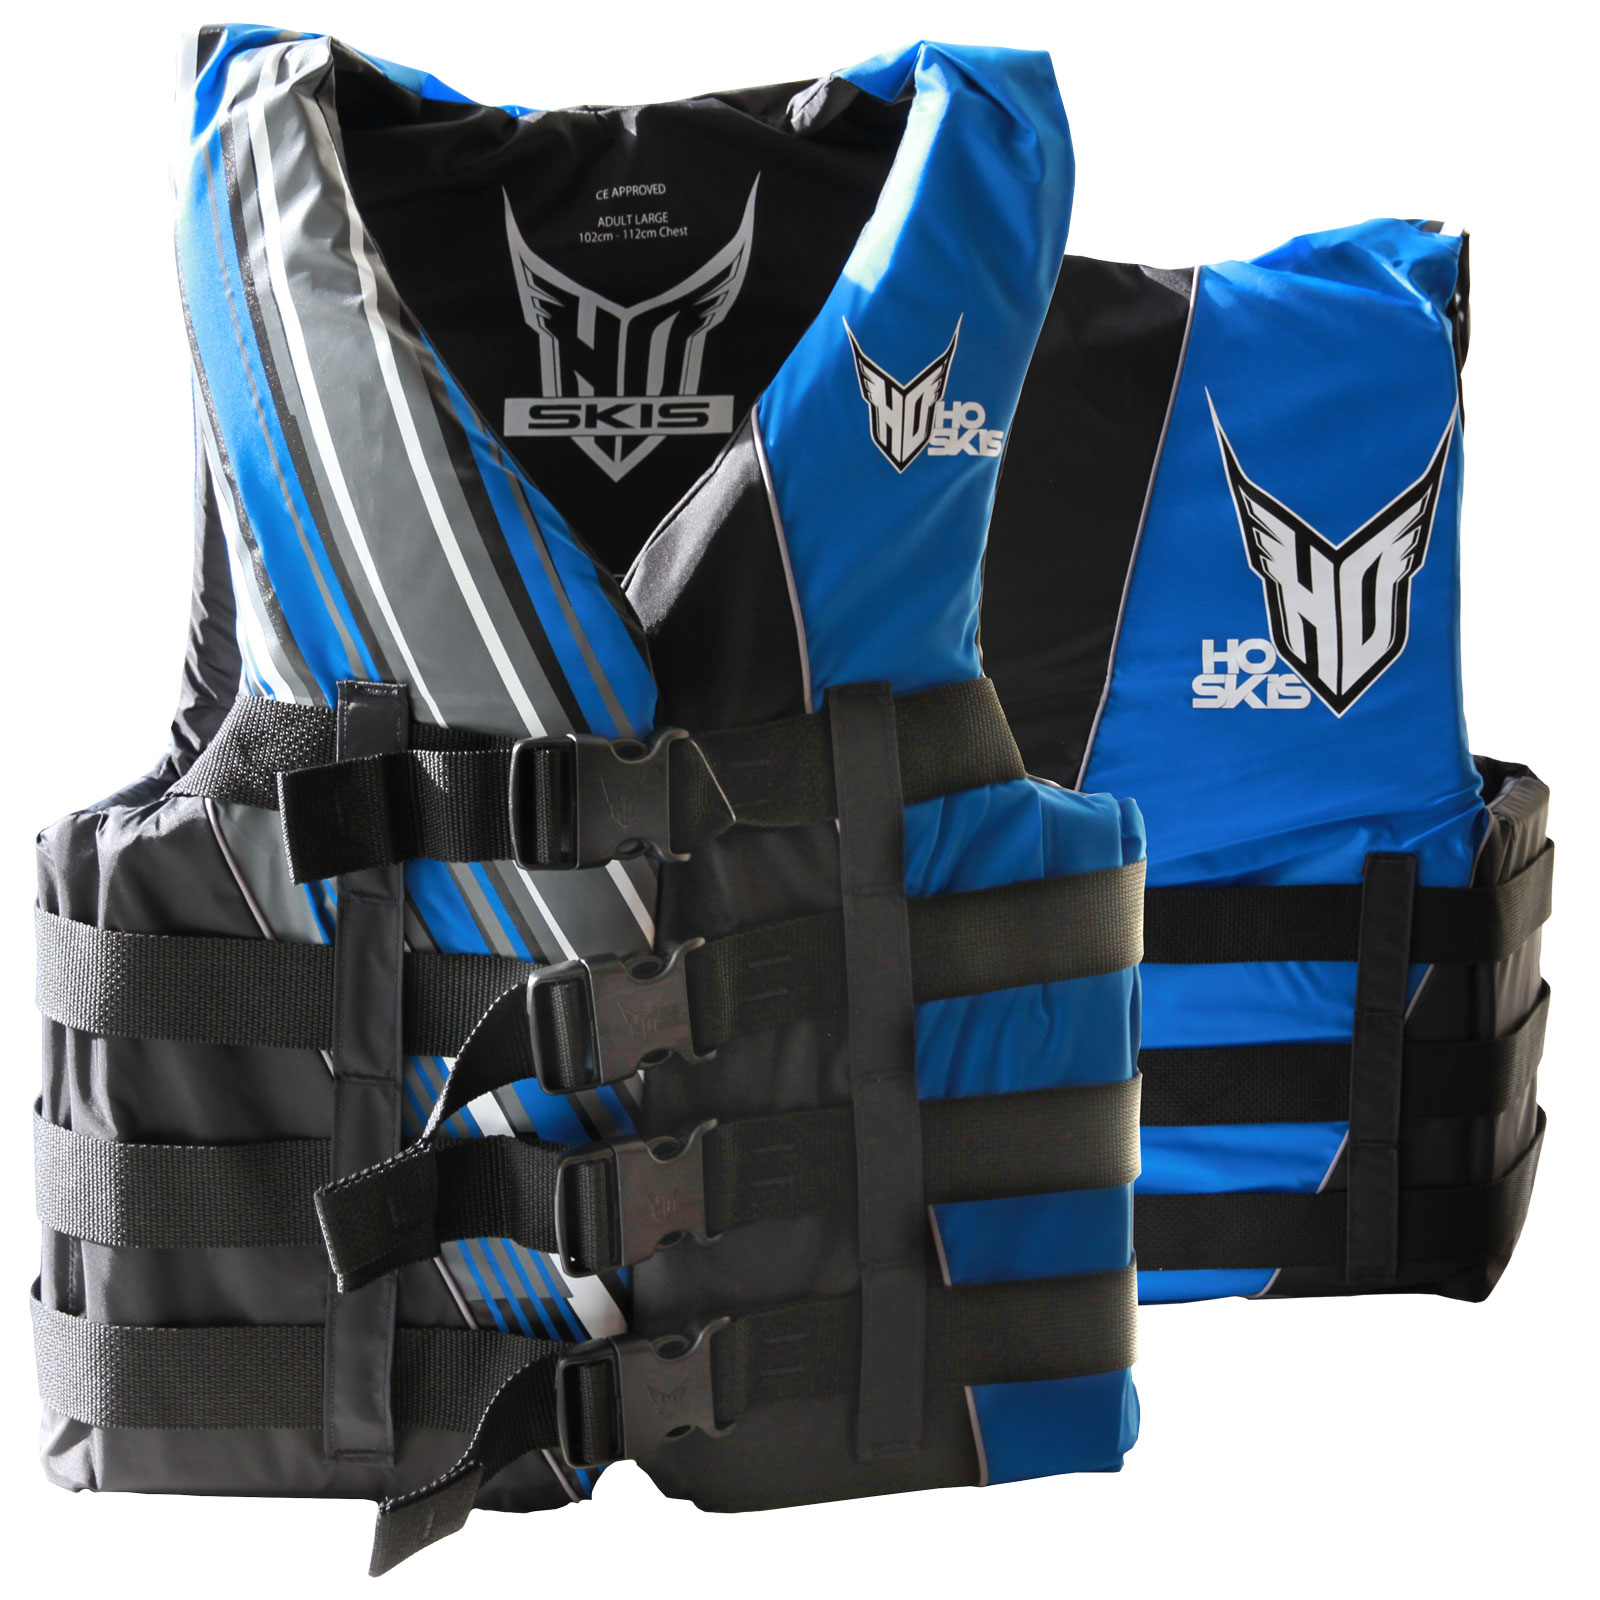 MENS 4-BUCKLE VEST BLACK/BLUE HO SPORTS 2017